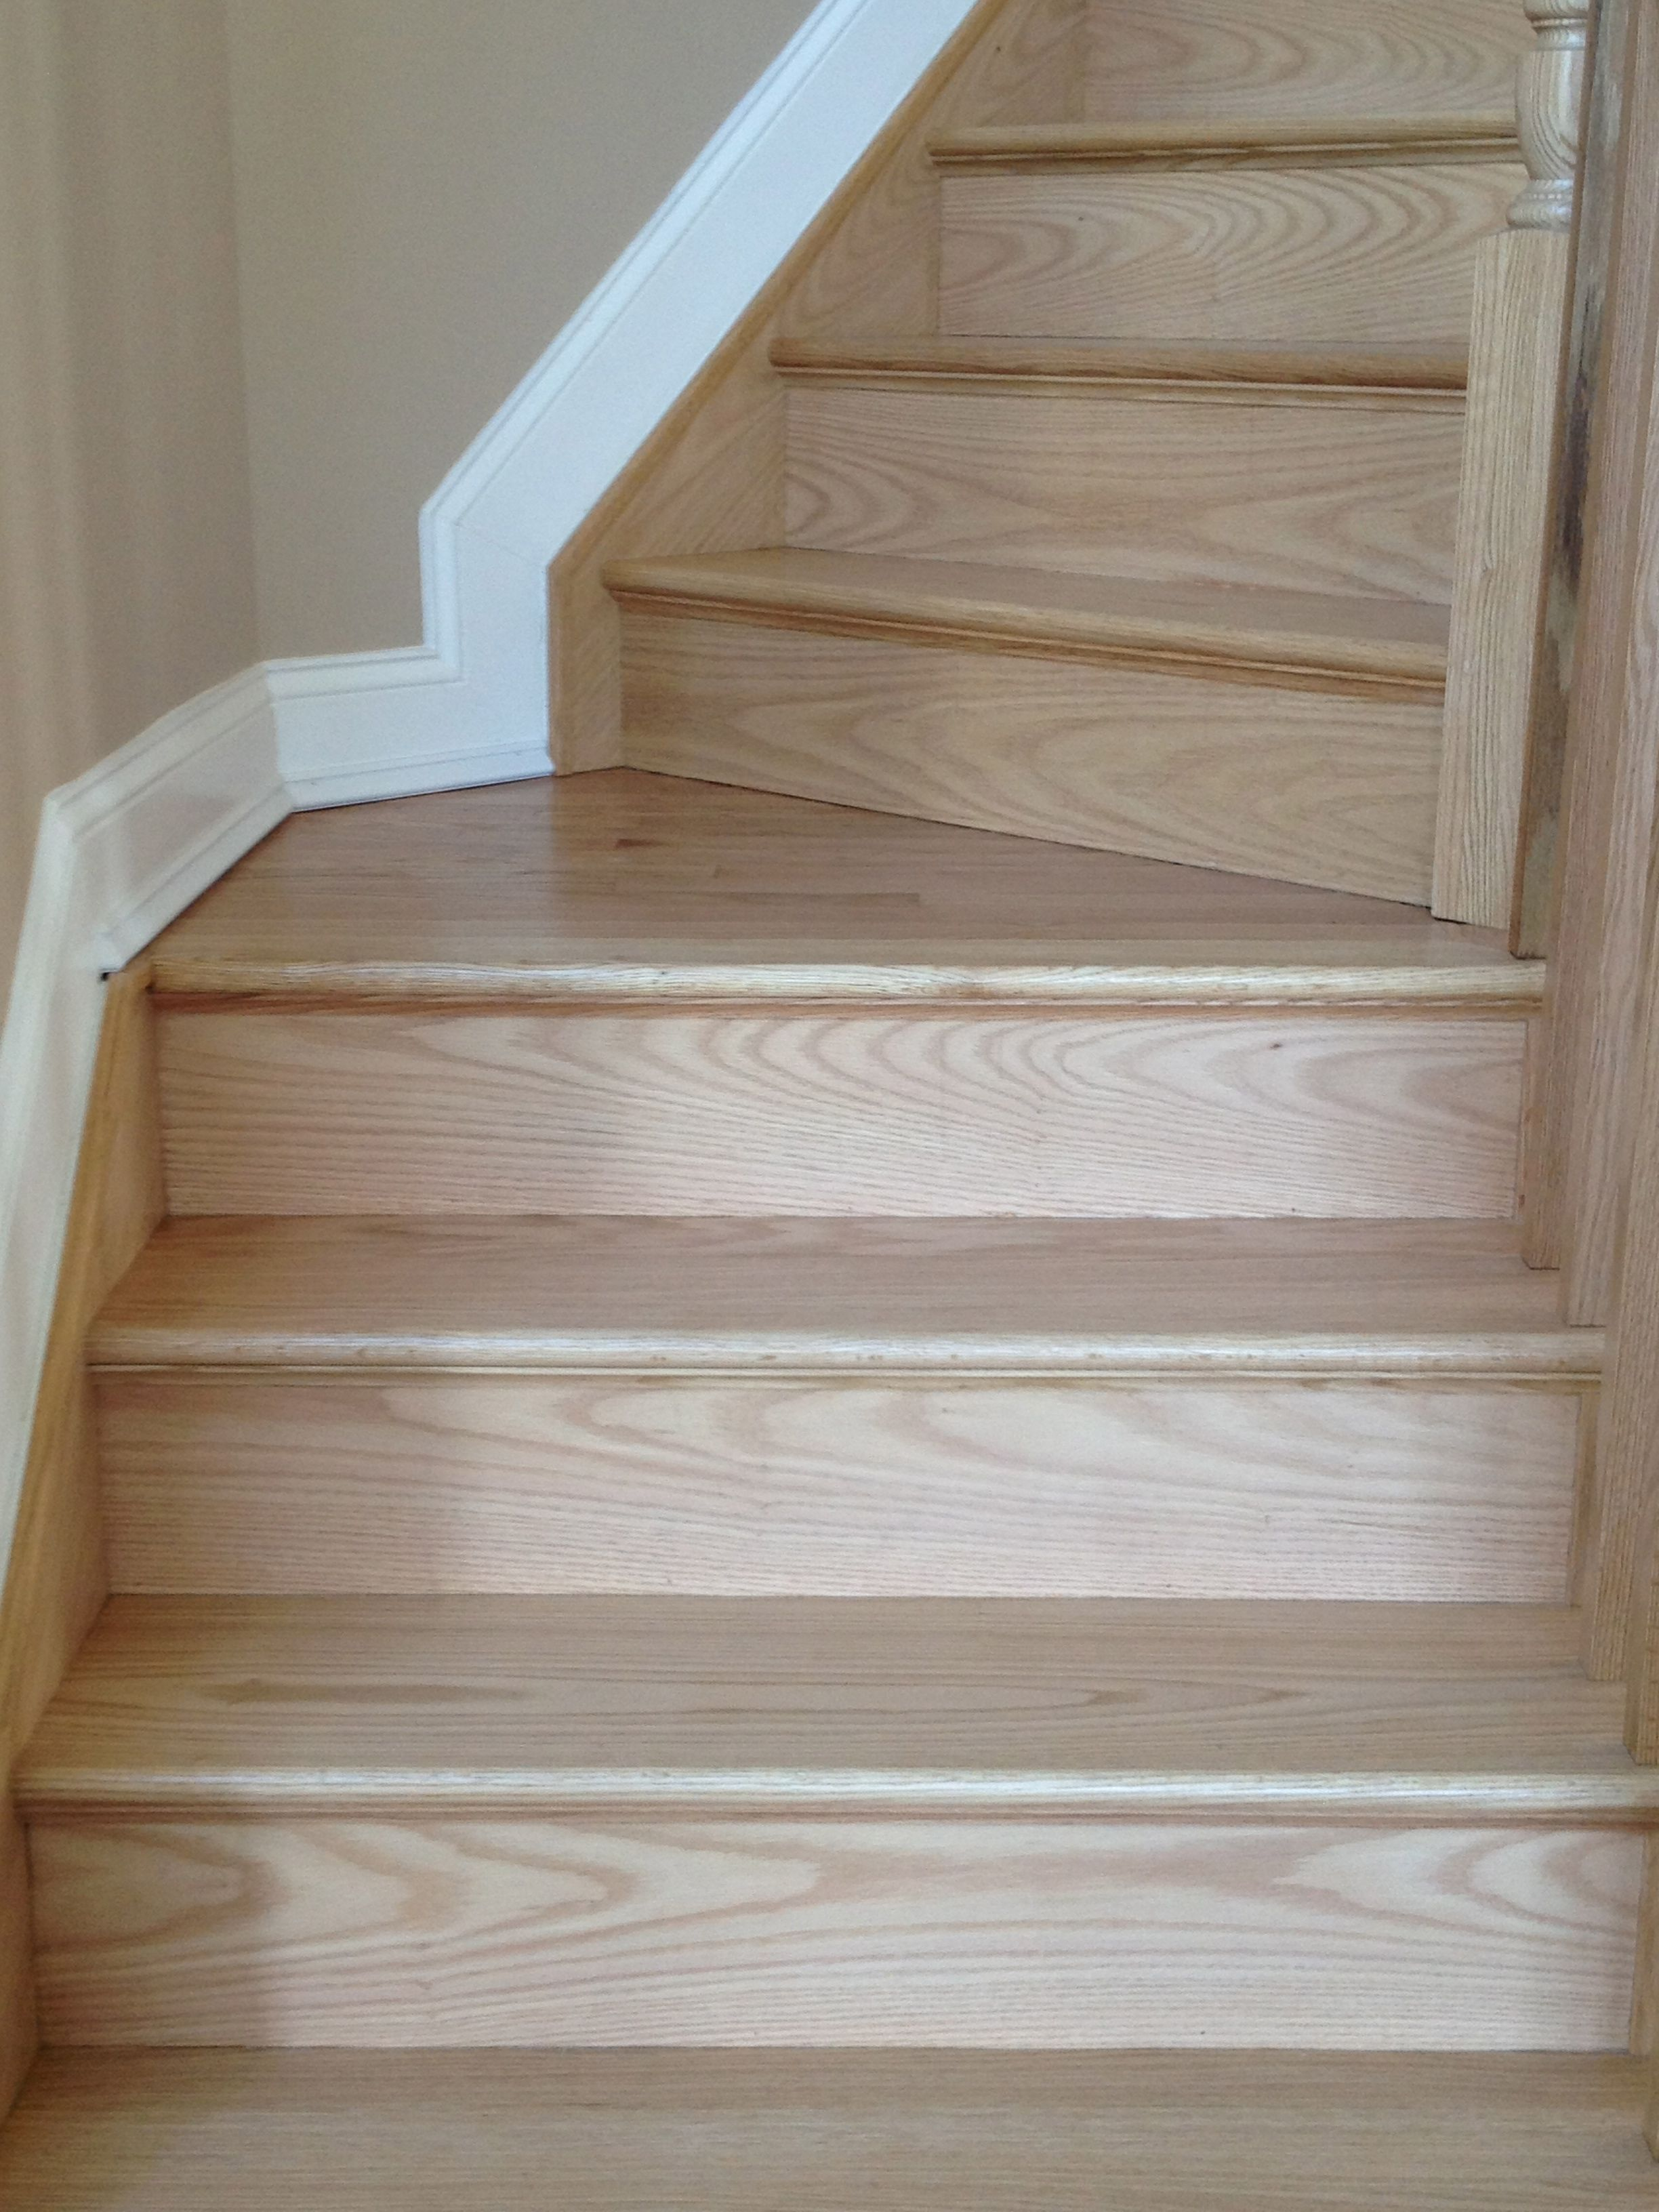 Gorsegner Brothers  Hardwood  Floors features replacement red oak     Gorsegner Brothers  Hardwood  Floors features replacement red oak  stair  risers and stringers finished in a natural color